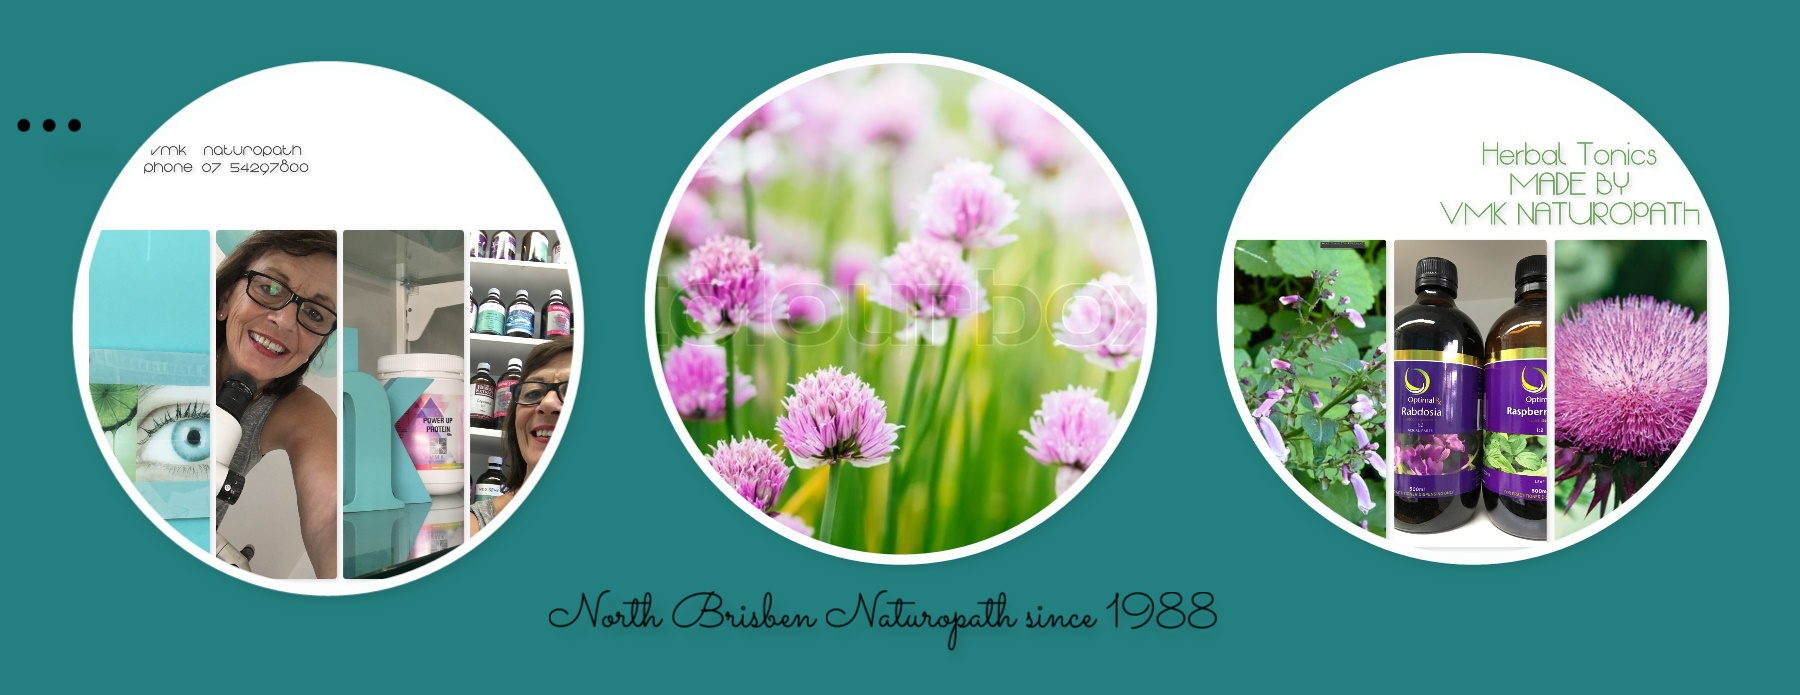 North Brisbane Naturopath coming soon to Redcliffe Peninula